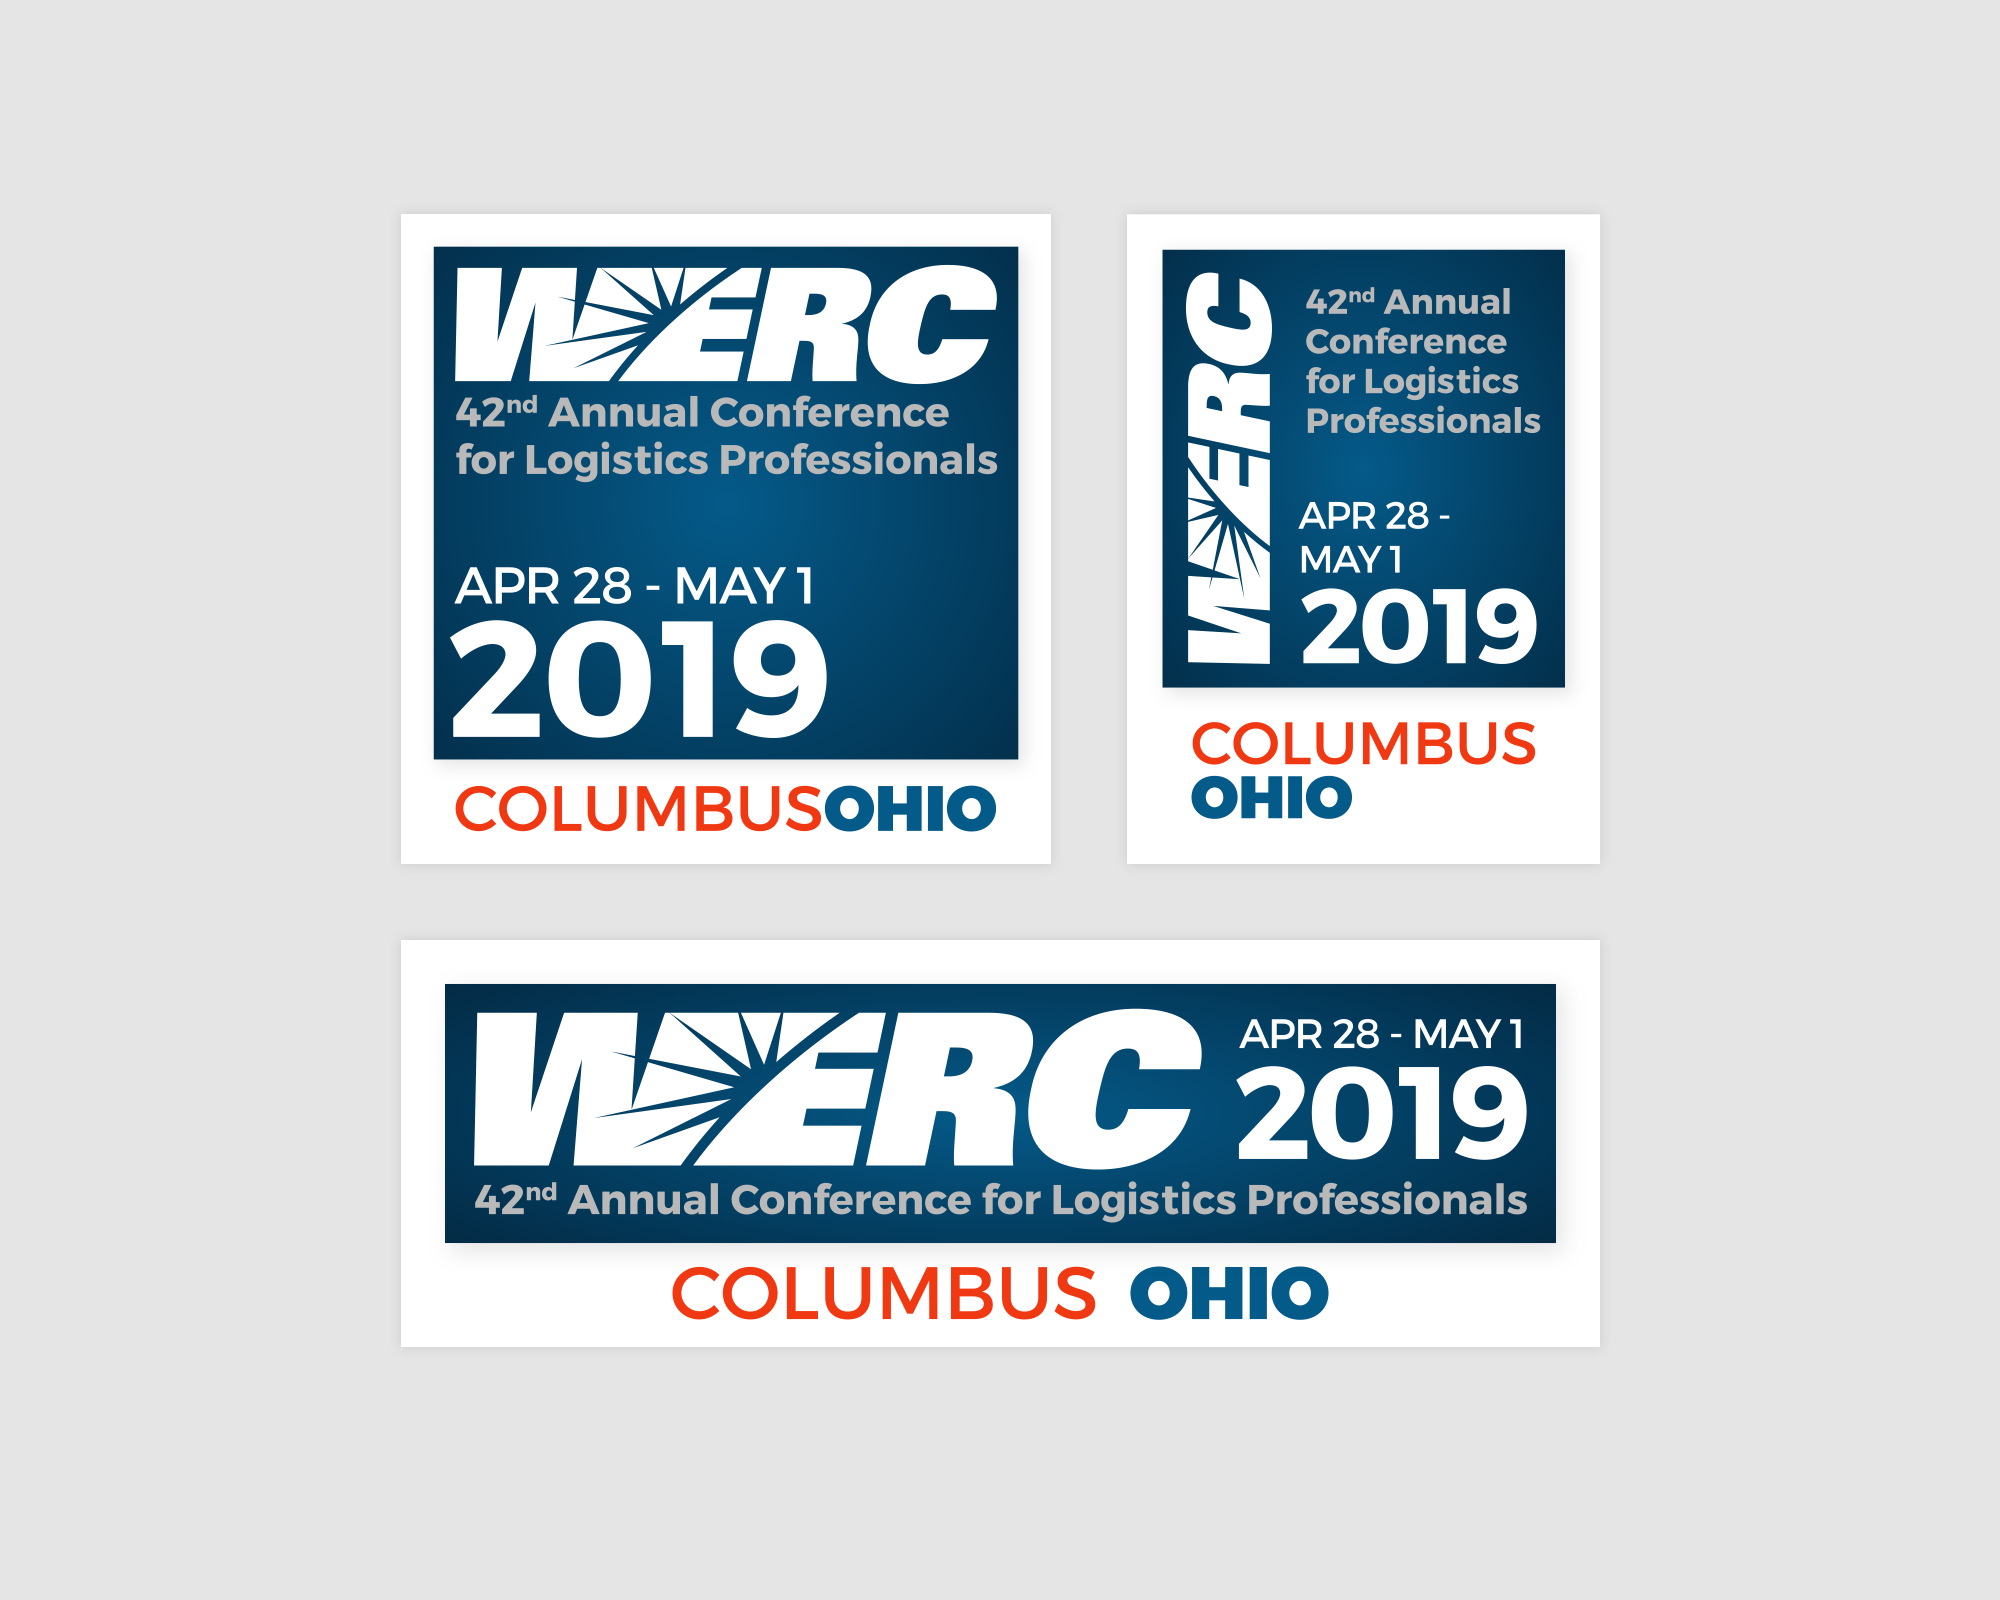 WERC 2019 Conference Logos